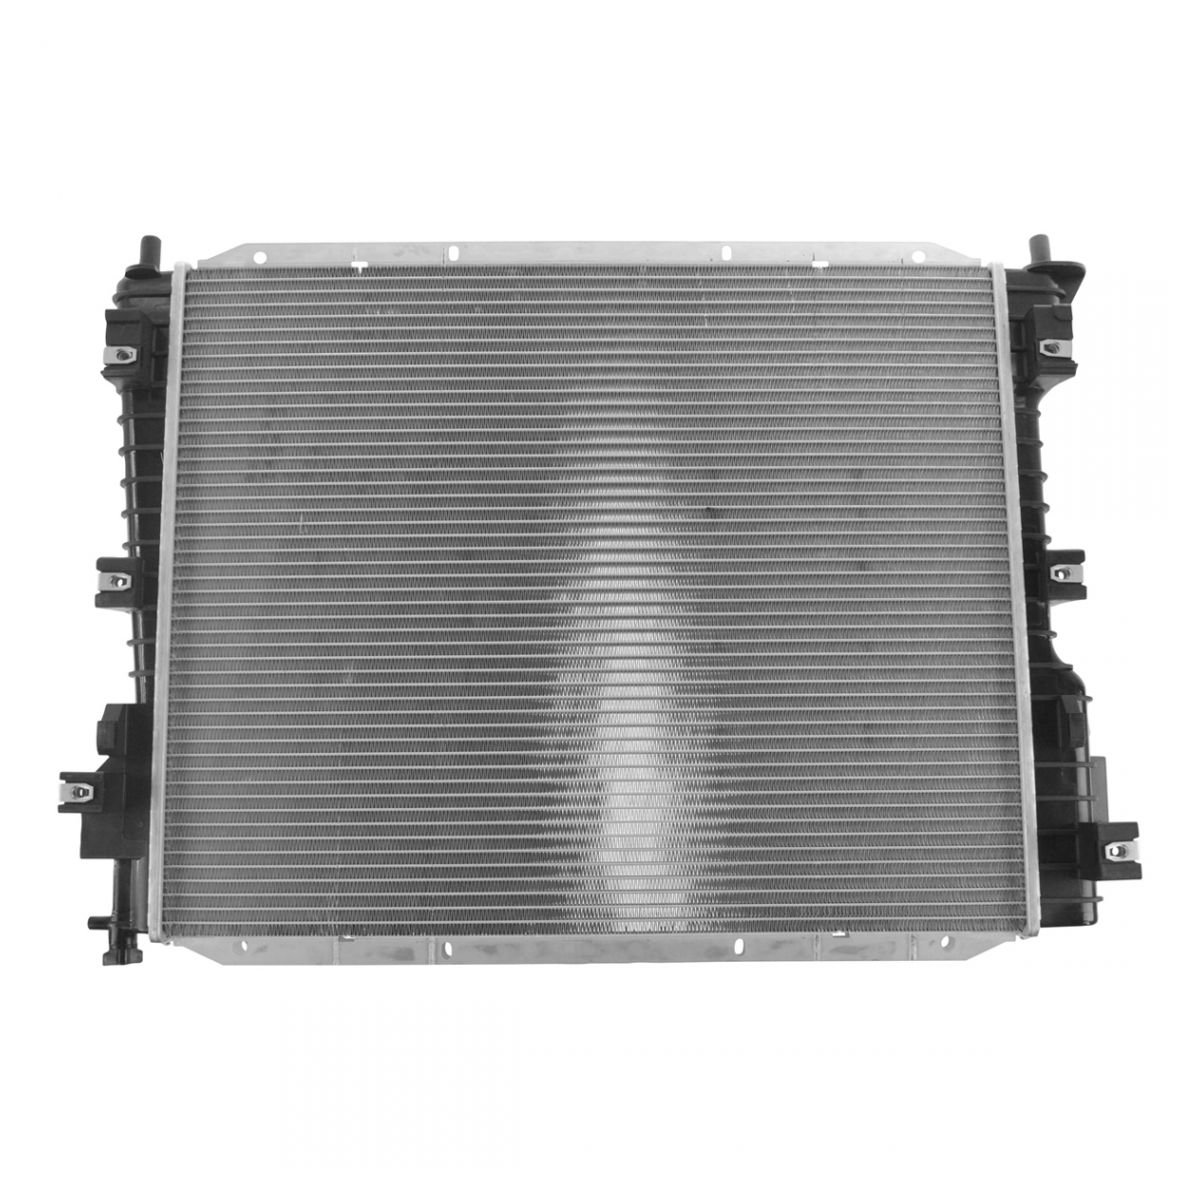 Radiator Assembly Aluminum Core Direct Fit for Lincoln LS Jag S-Type New